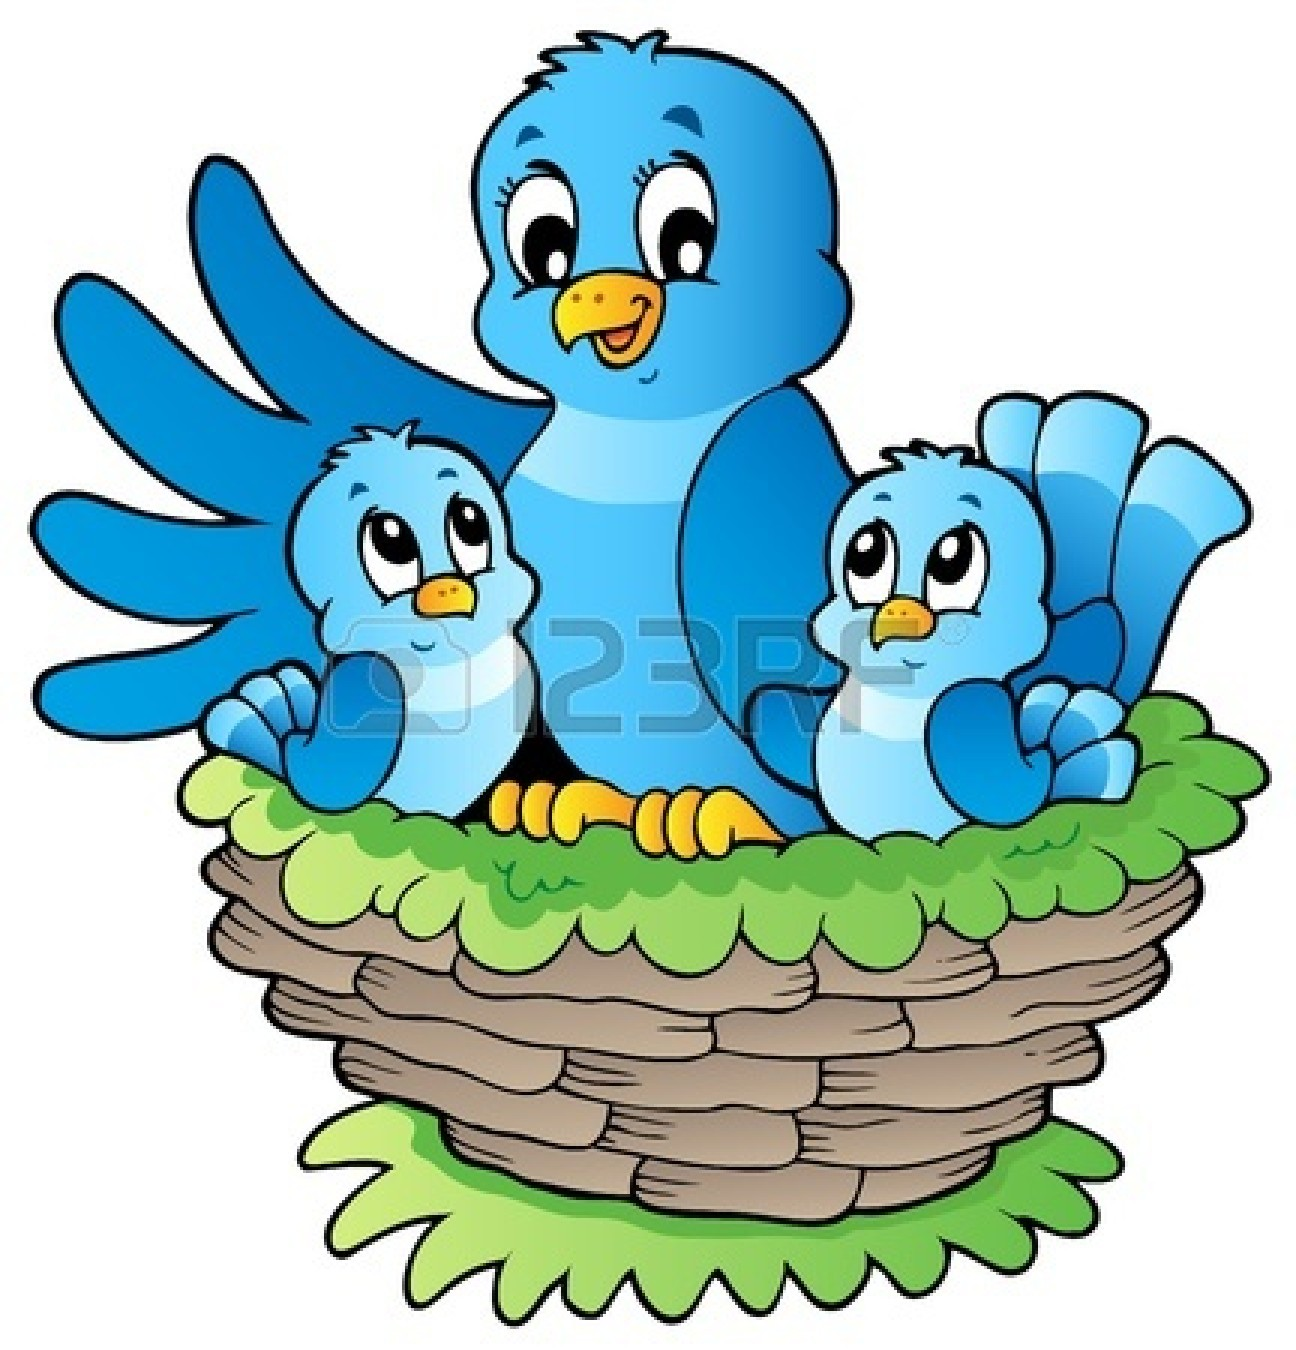 Similiar Cartoon Clip Art Bird Nest Keywords.